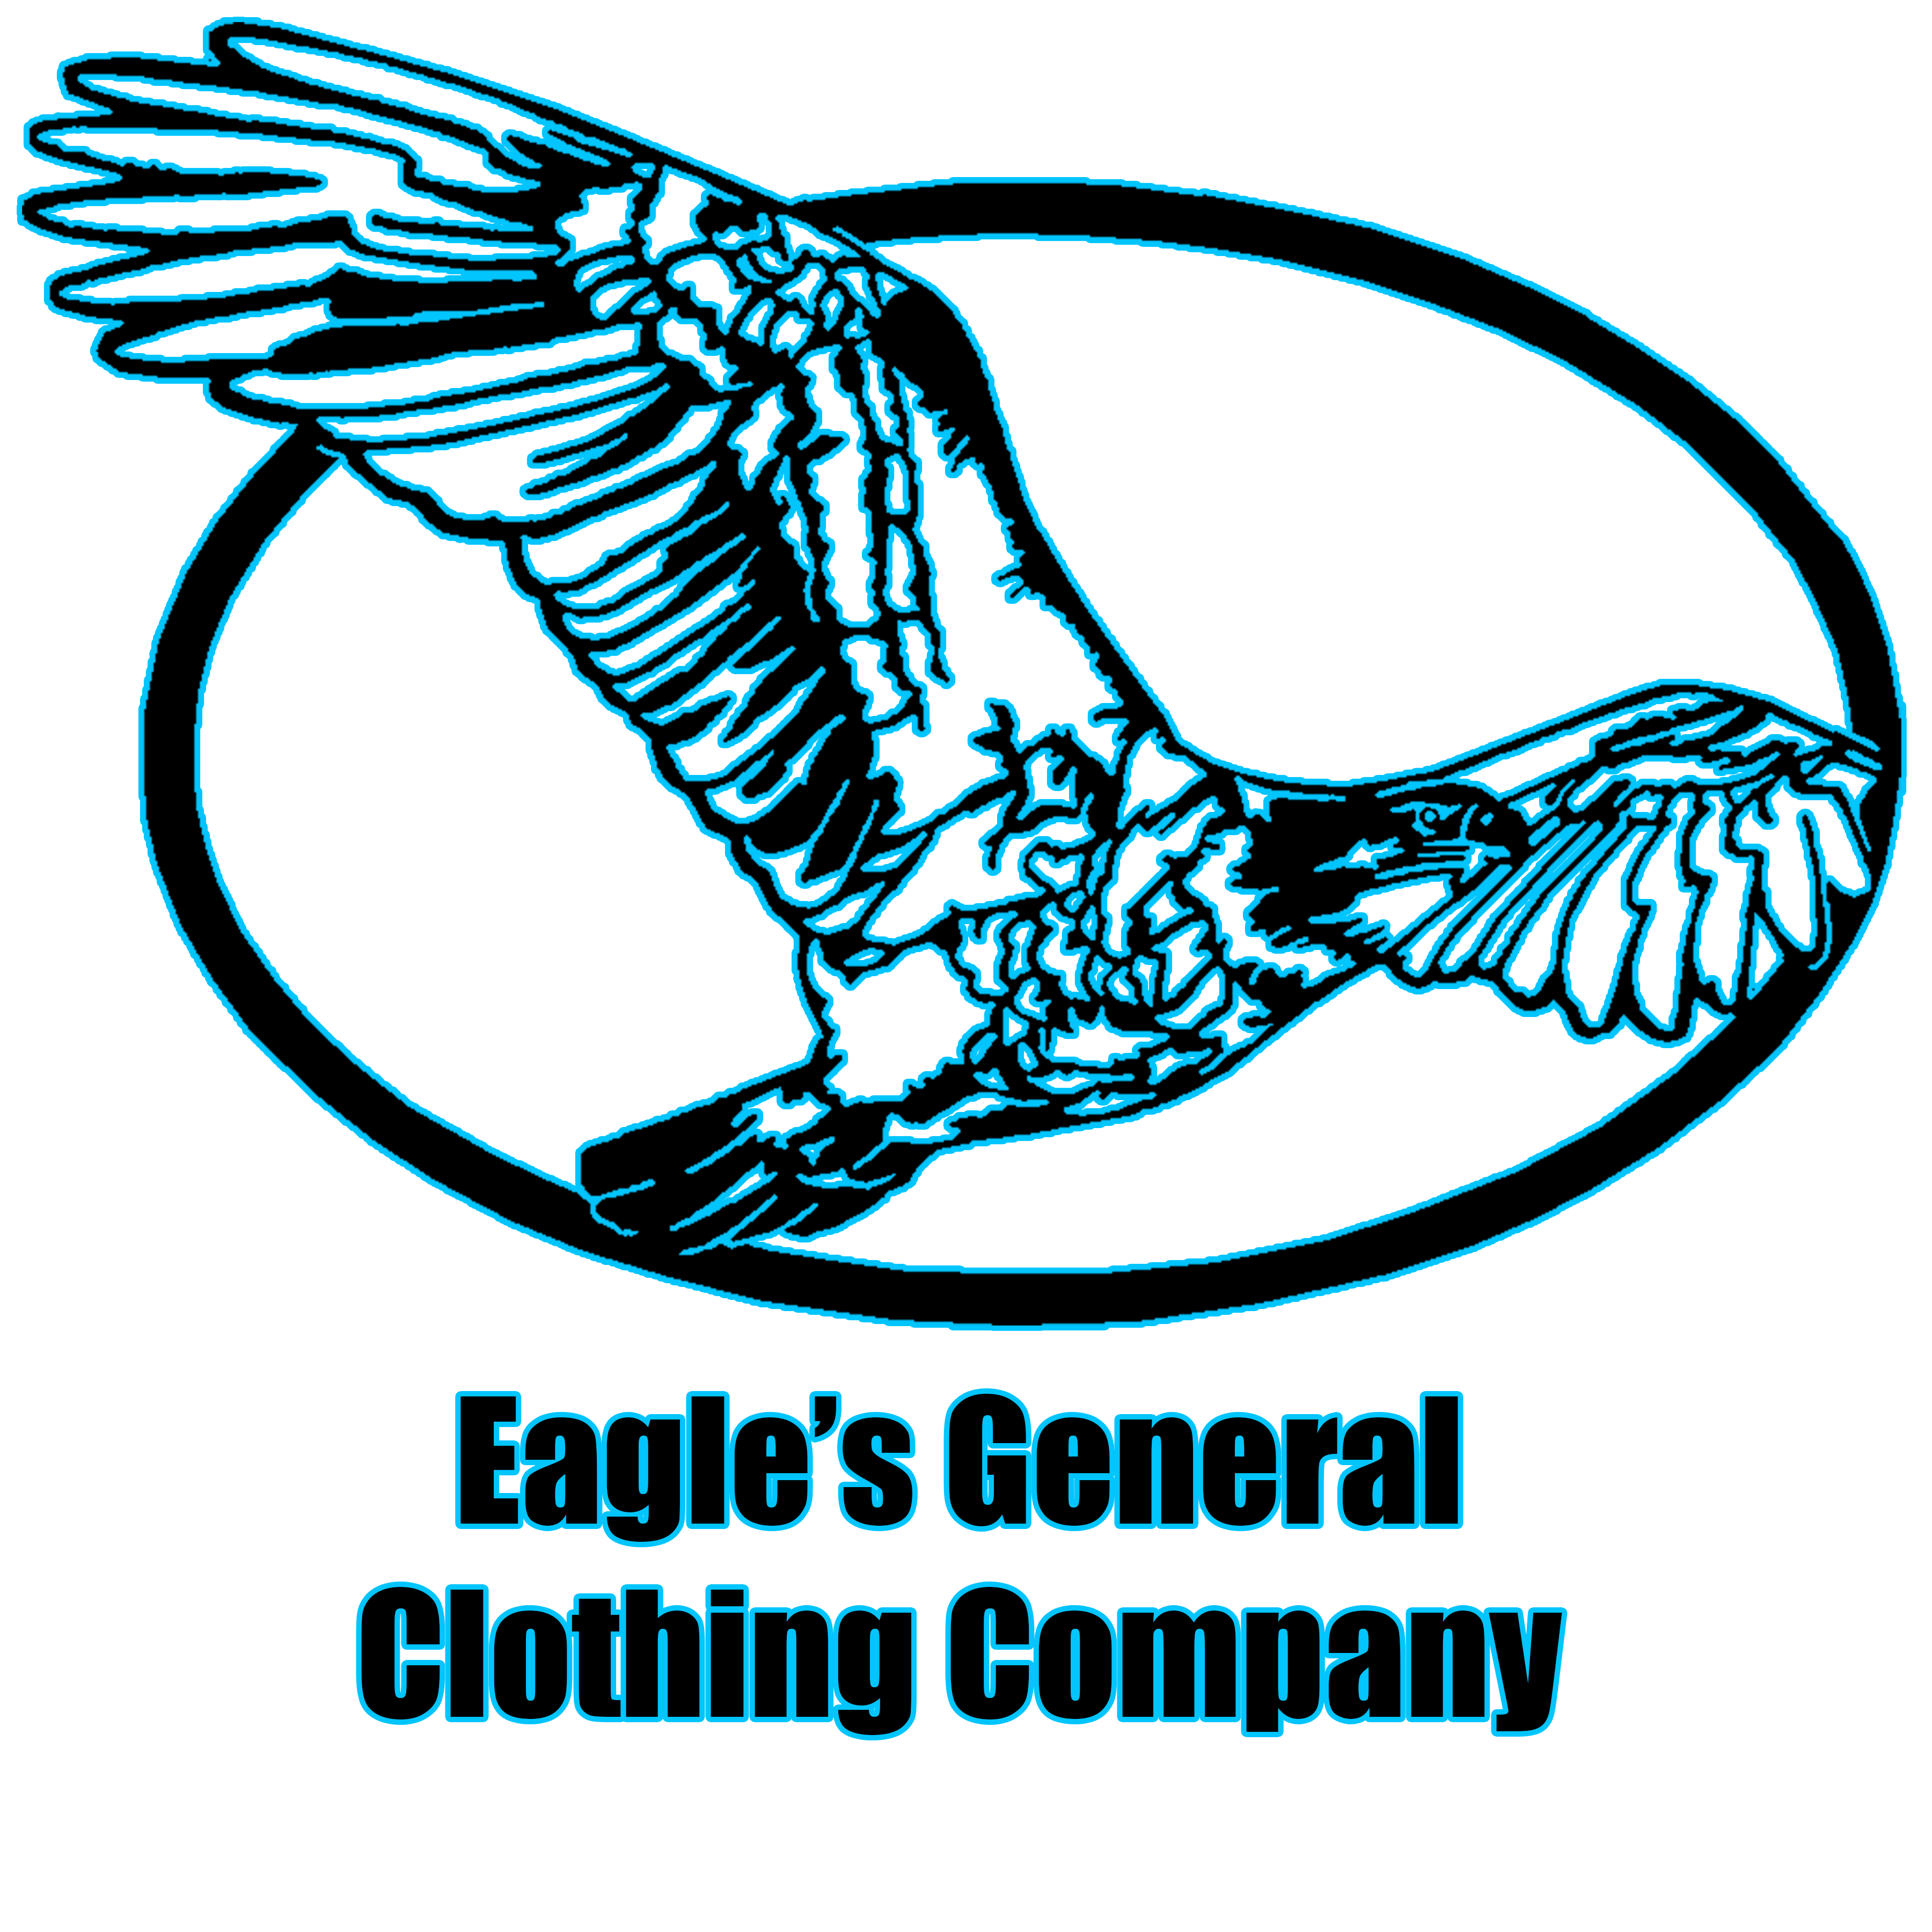 Eagles General Clothing Company